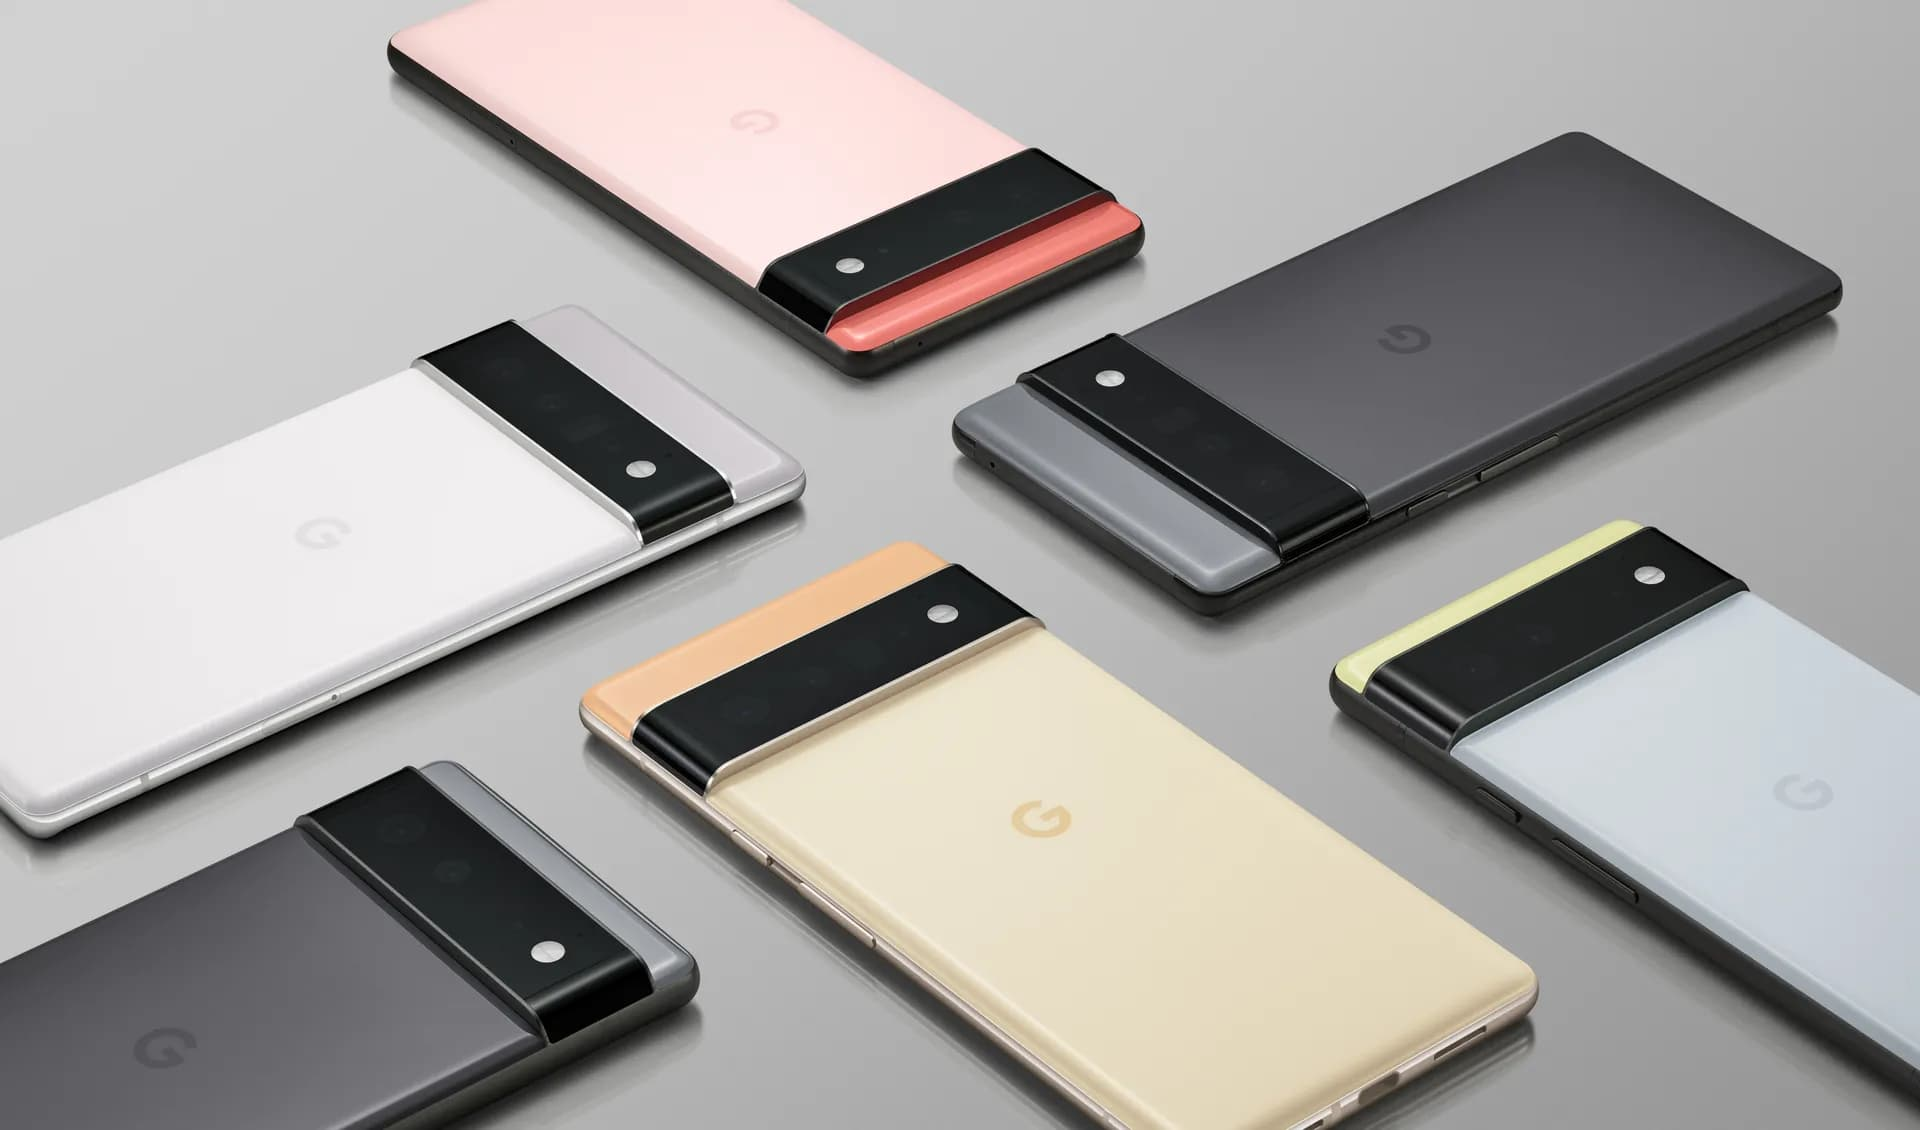 Promotional graphics showcasing Google Pixel 6 and Pixel 6 Pro smartphone lineup